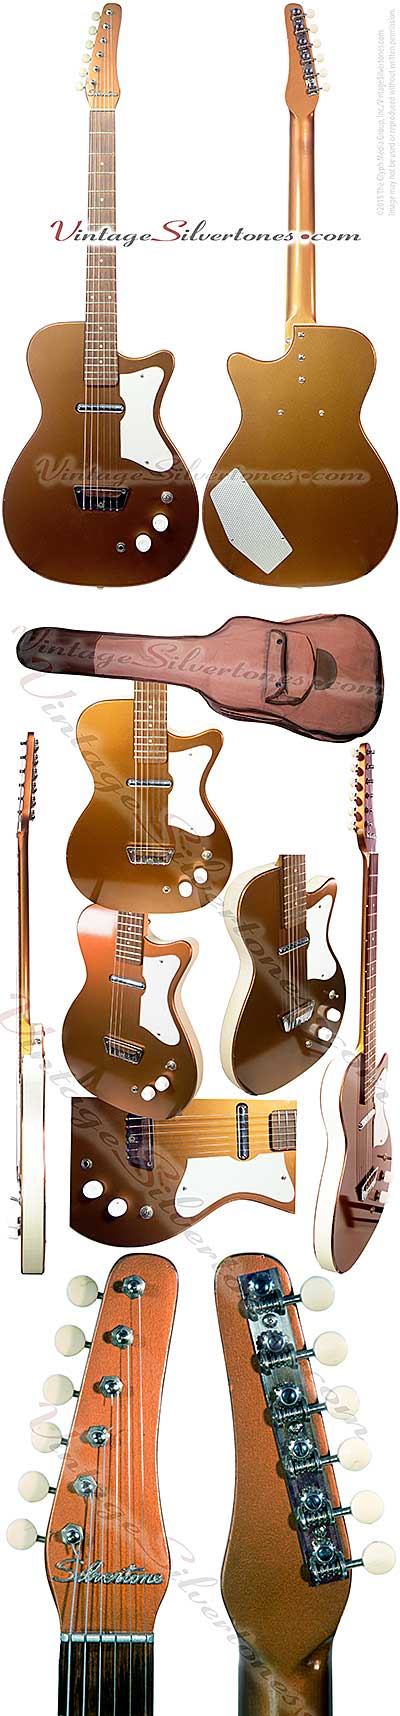 Silvertone 1415-Danelectro-made 1 pickup, electric guitar, dolphin, 1960, bronze